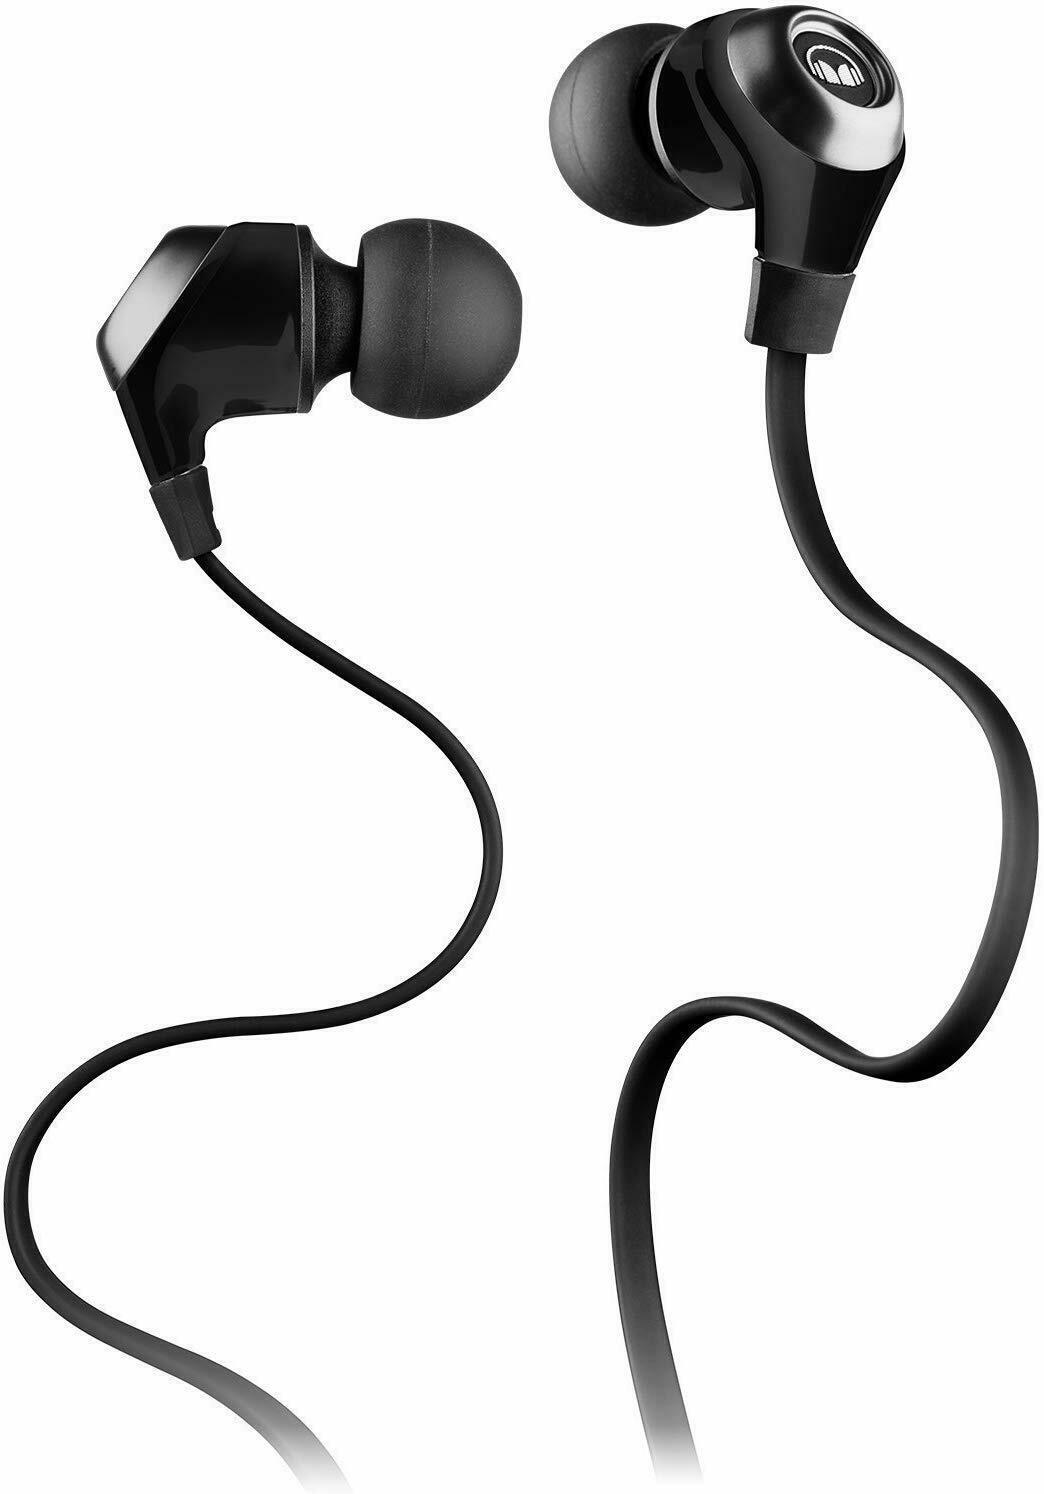 Primary image for Monster N Lite In Ear Lightweight Headphones - Black